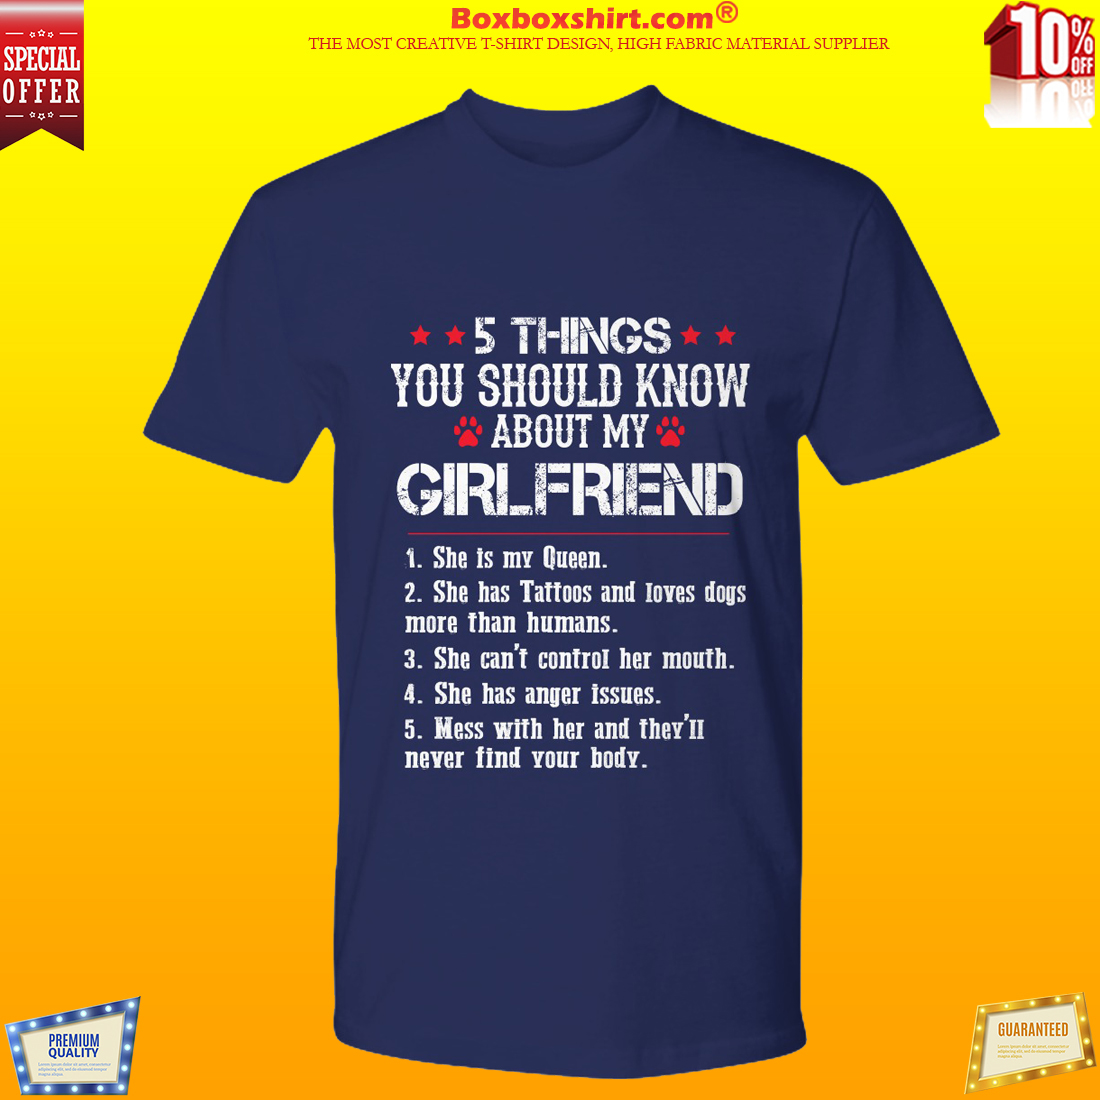 5 things you should know about my girlfriend shirt and hoodies